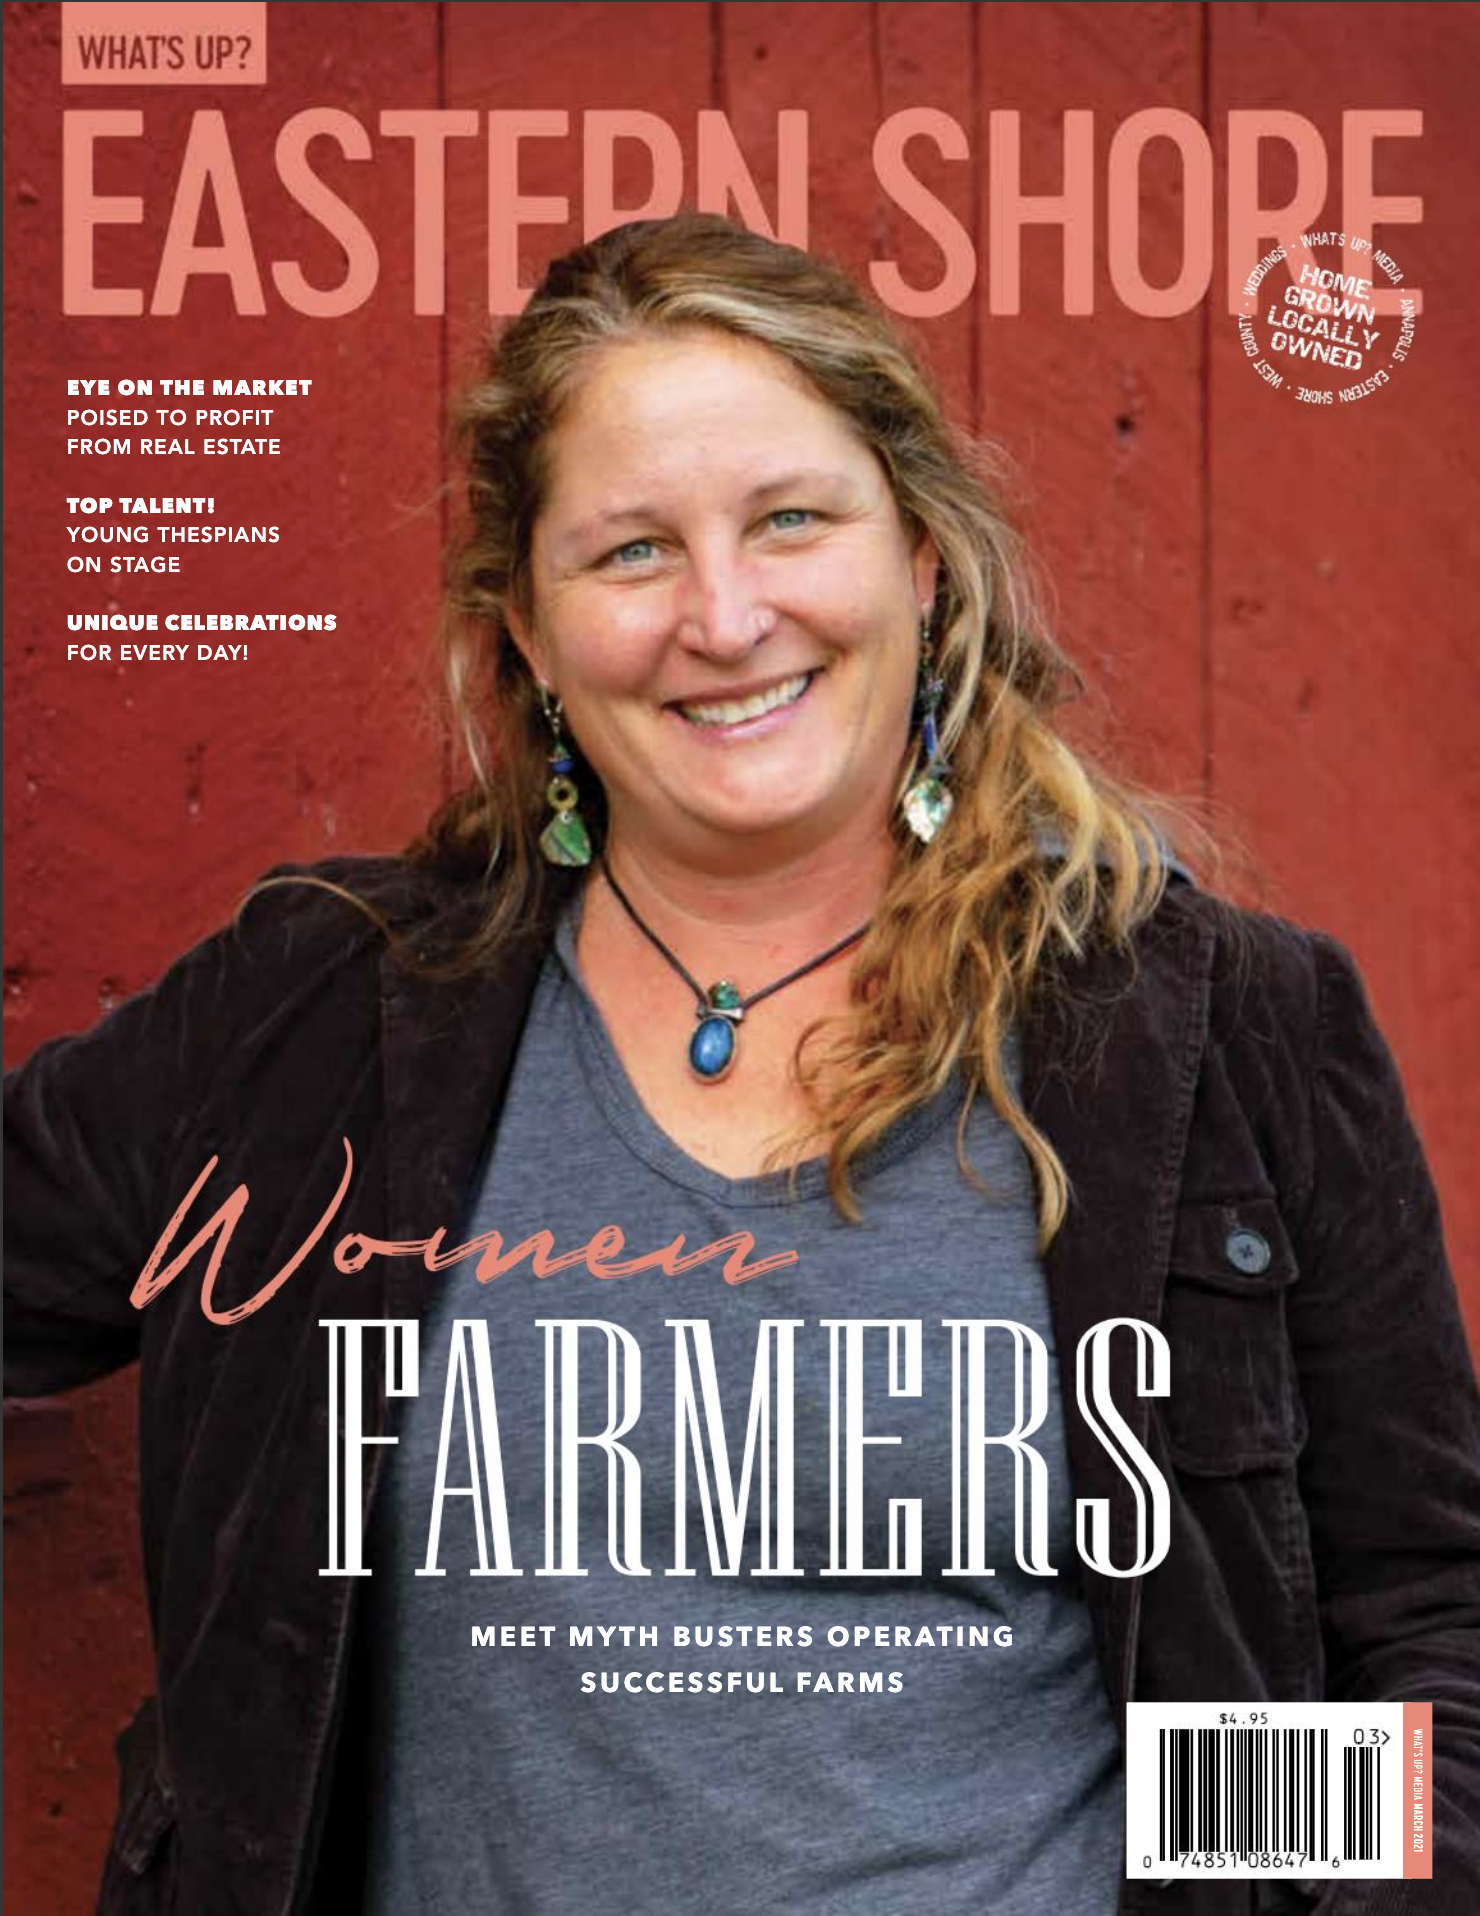 Spirit Grower Featured in What's Up Eastern Shore Magazine